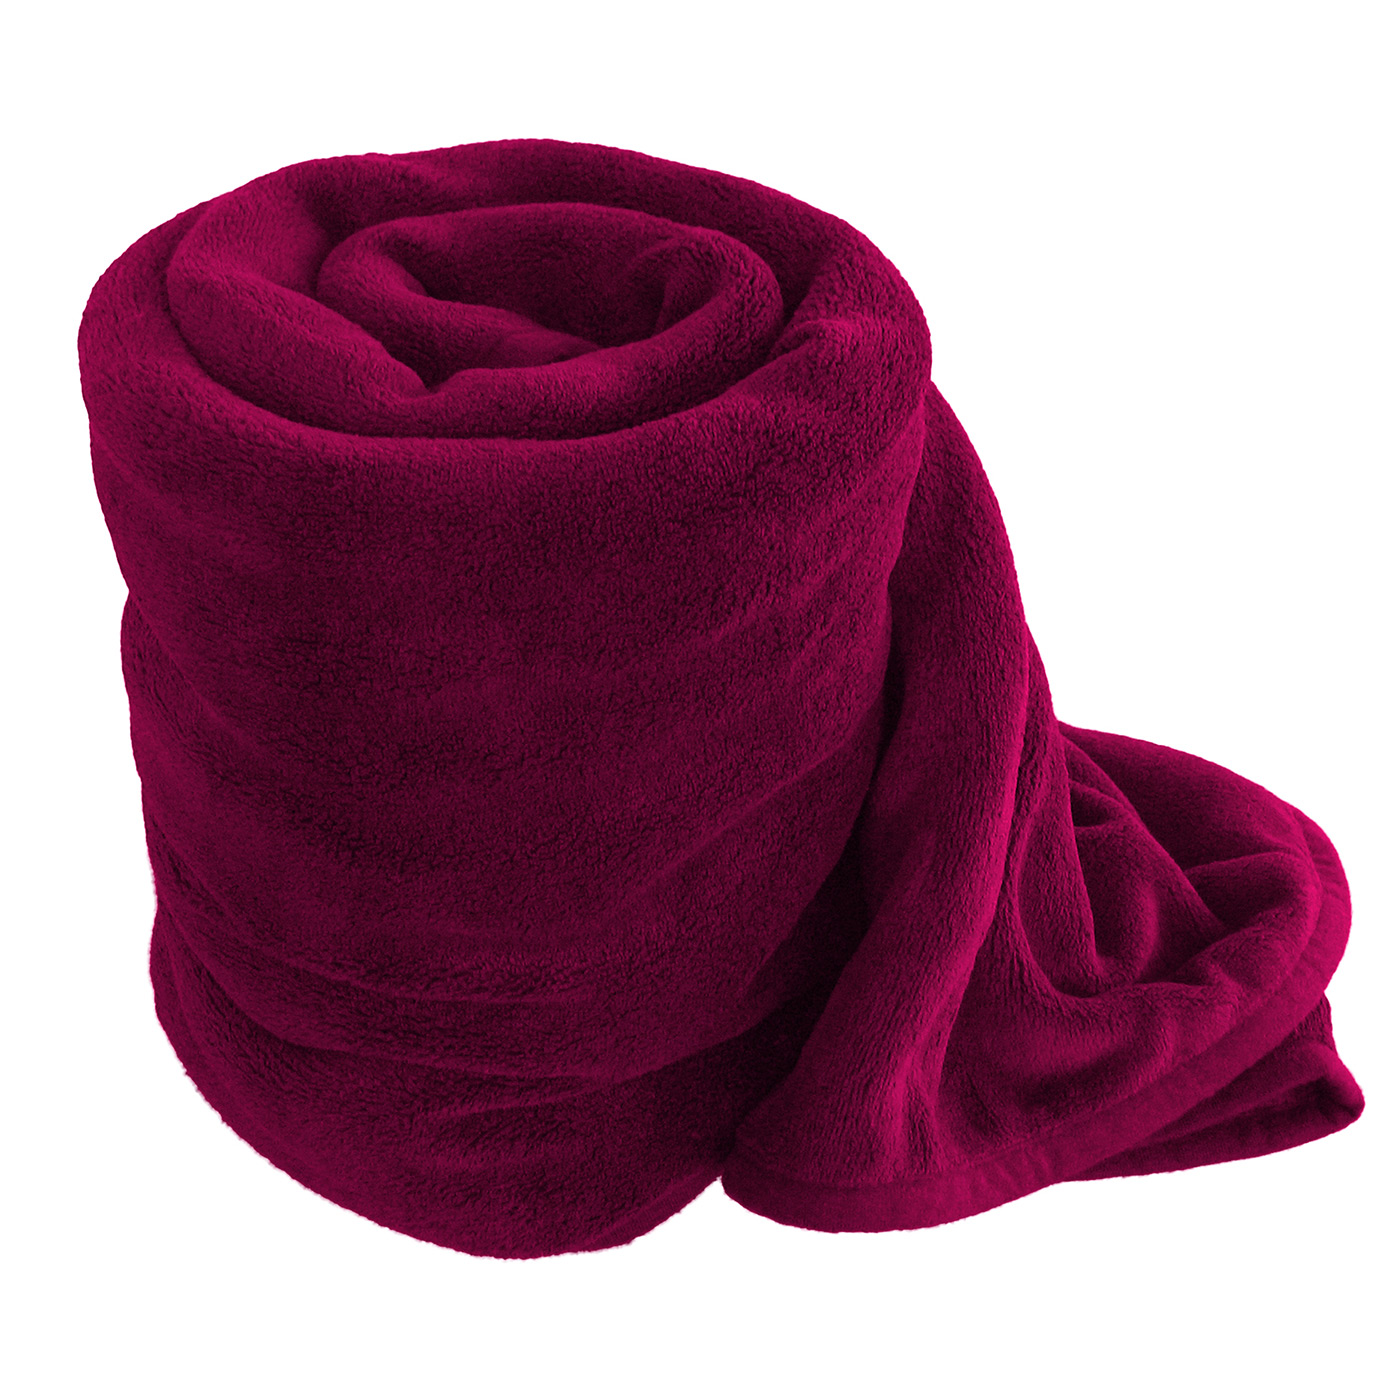 Purple Color Names Coral Blanket Fleece Blankets Northeast Fleece Co